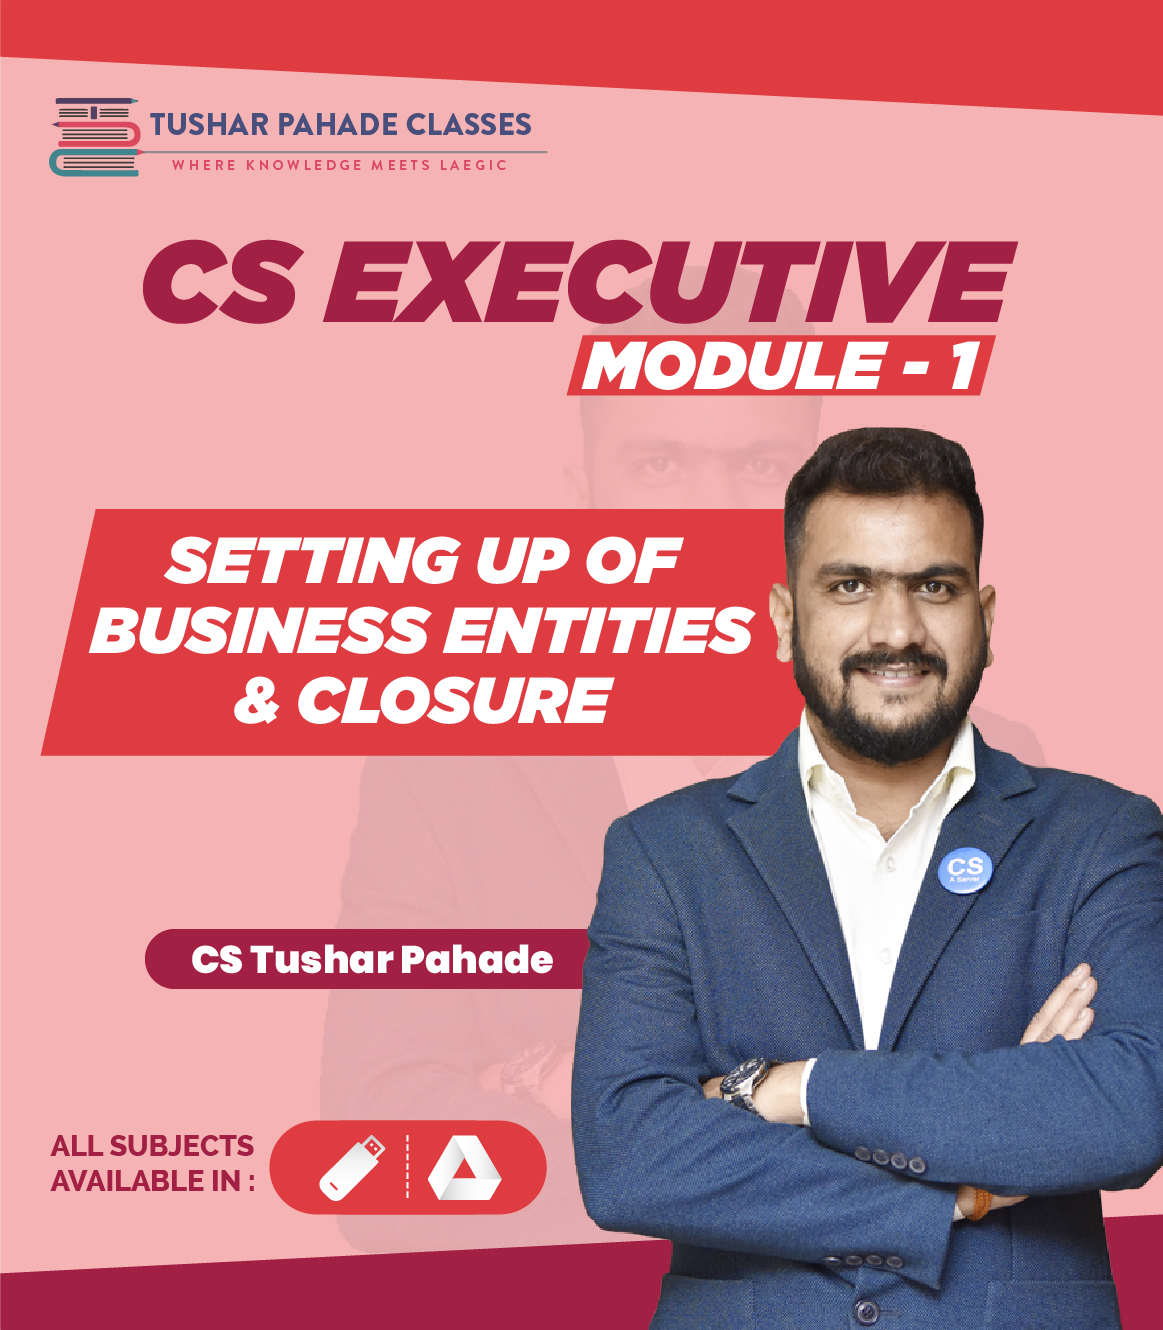 CS Executive Module 1 online classes by CS Tushar Pahade